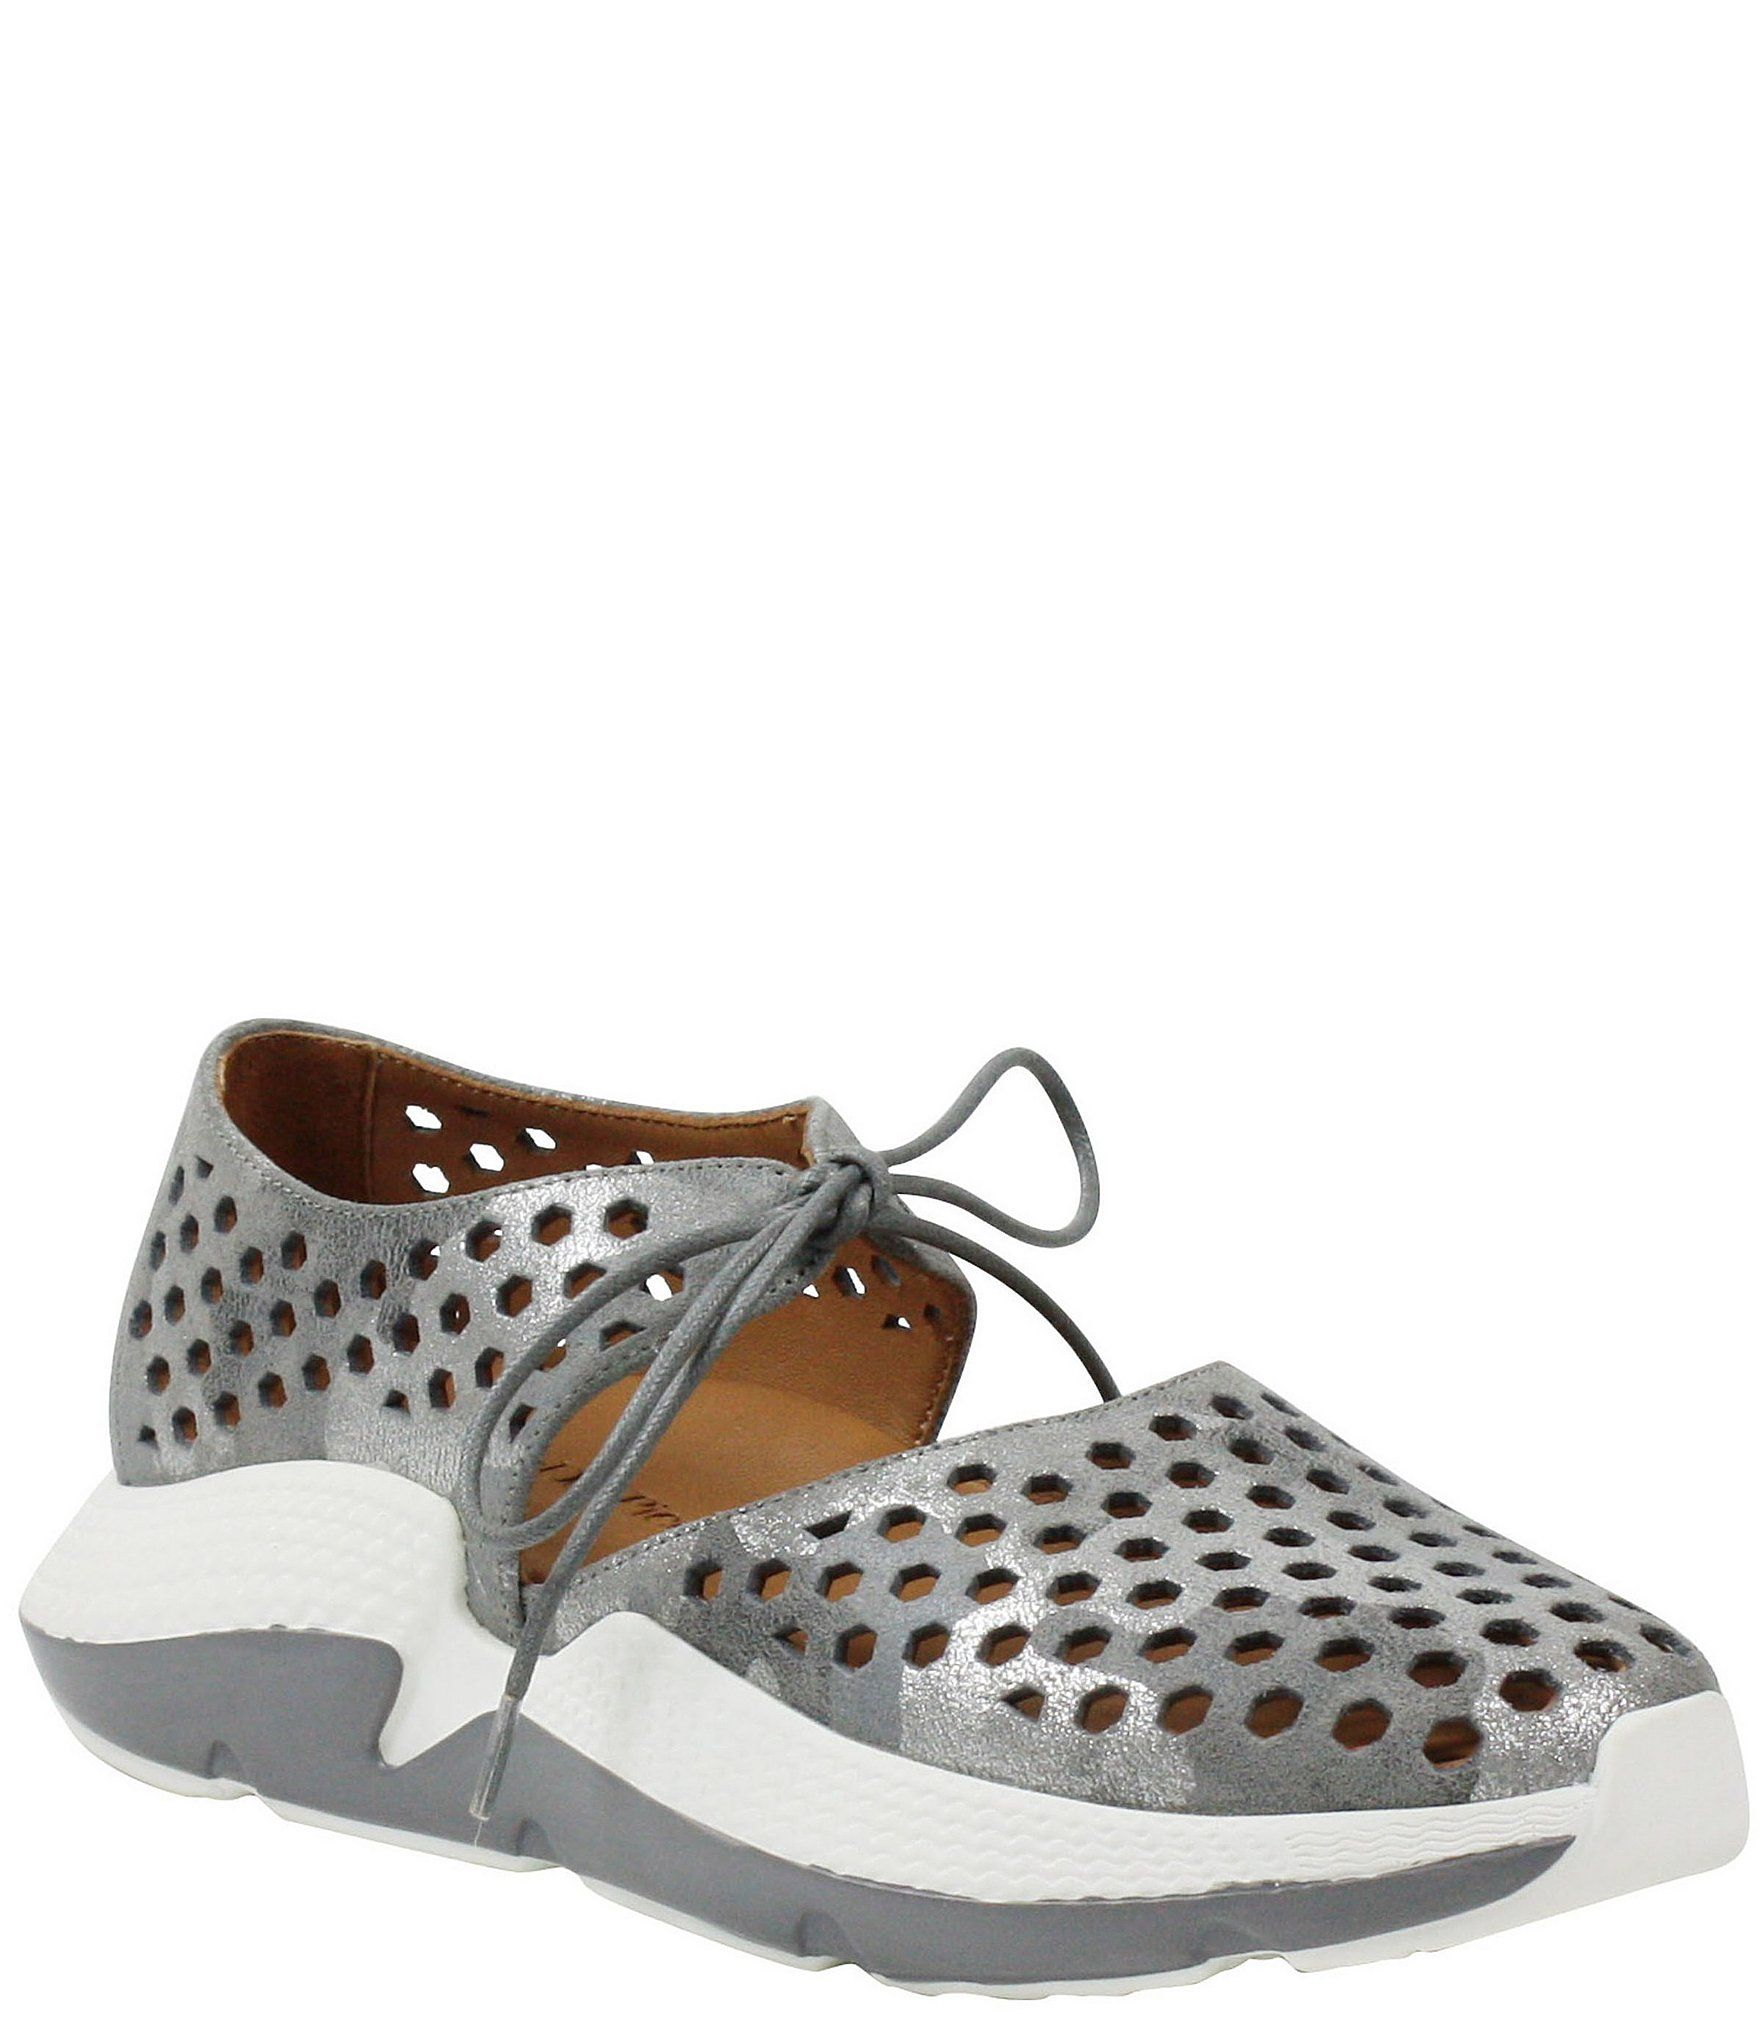 L'amour Des Pieds Himar Perforated Metallic Leather Sneaker - 8.5M